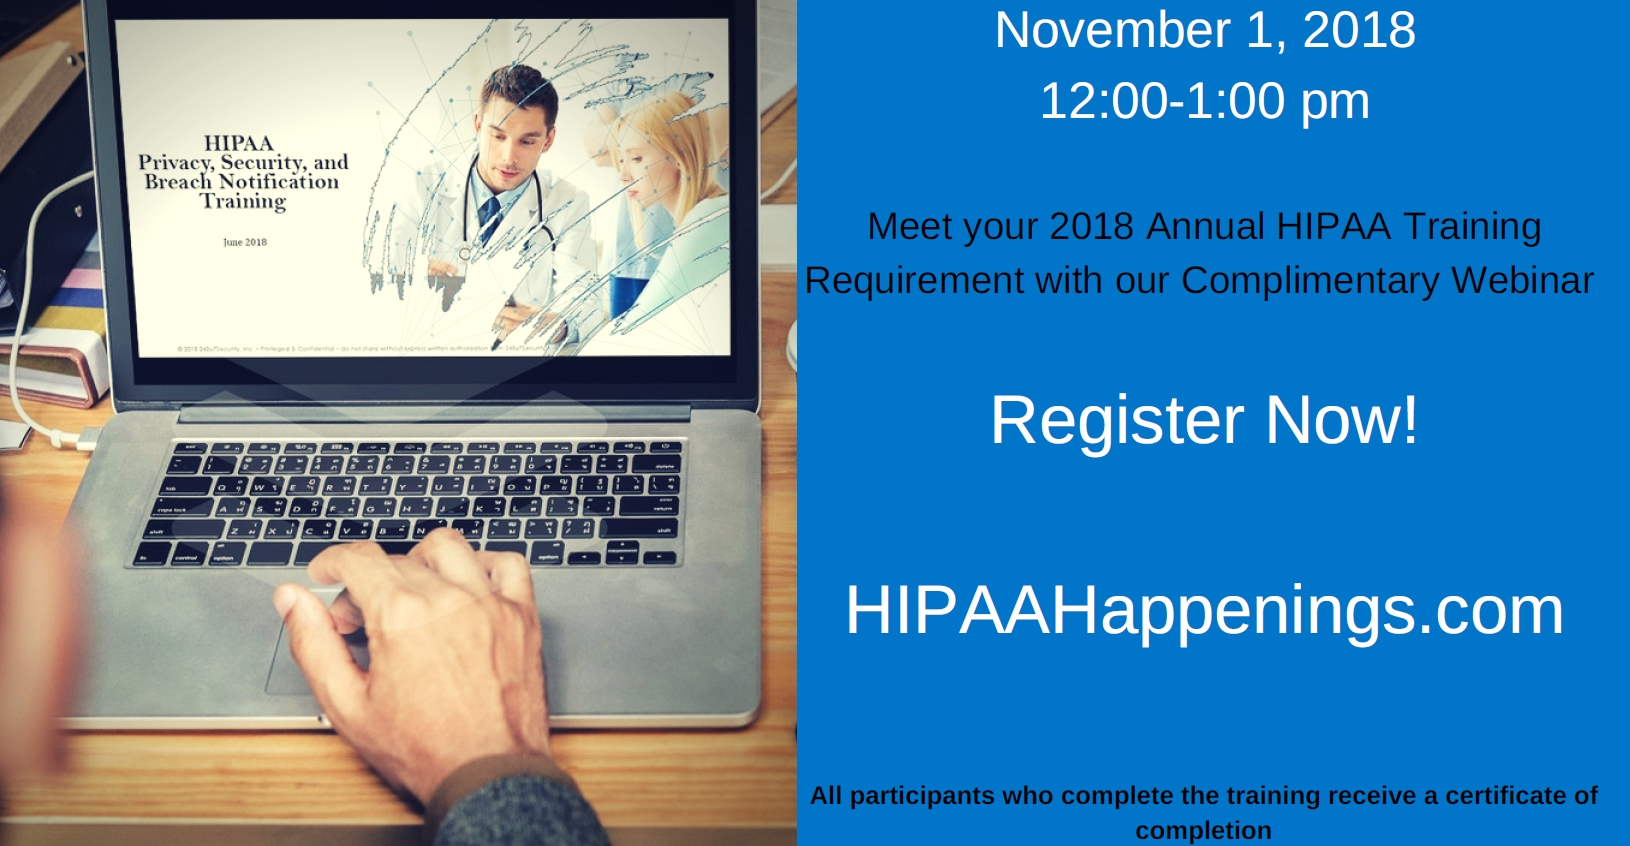 HIPAA Happenings event